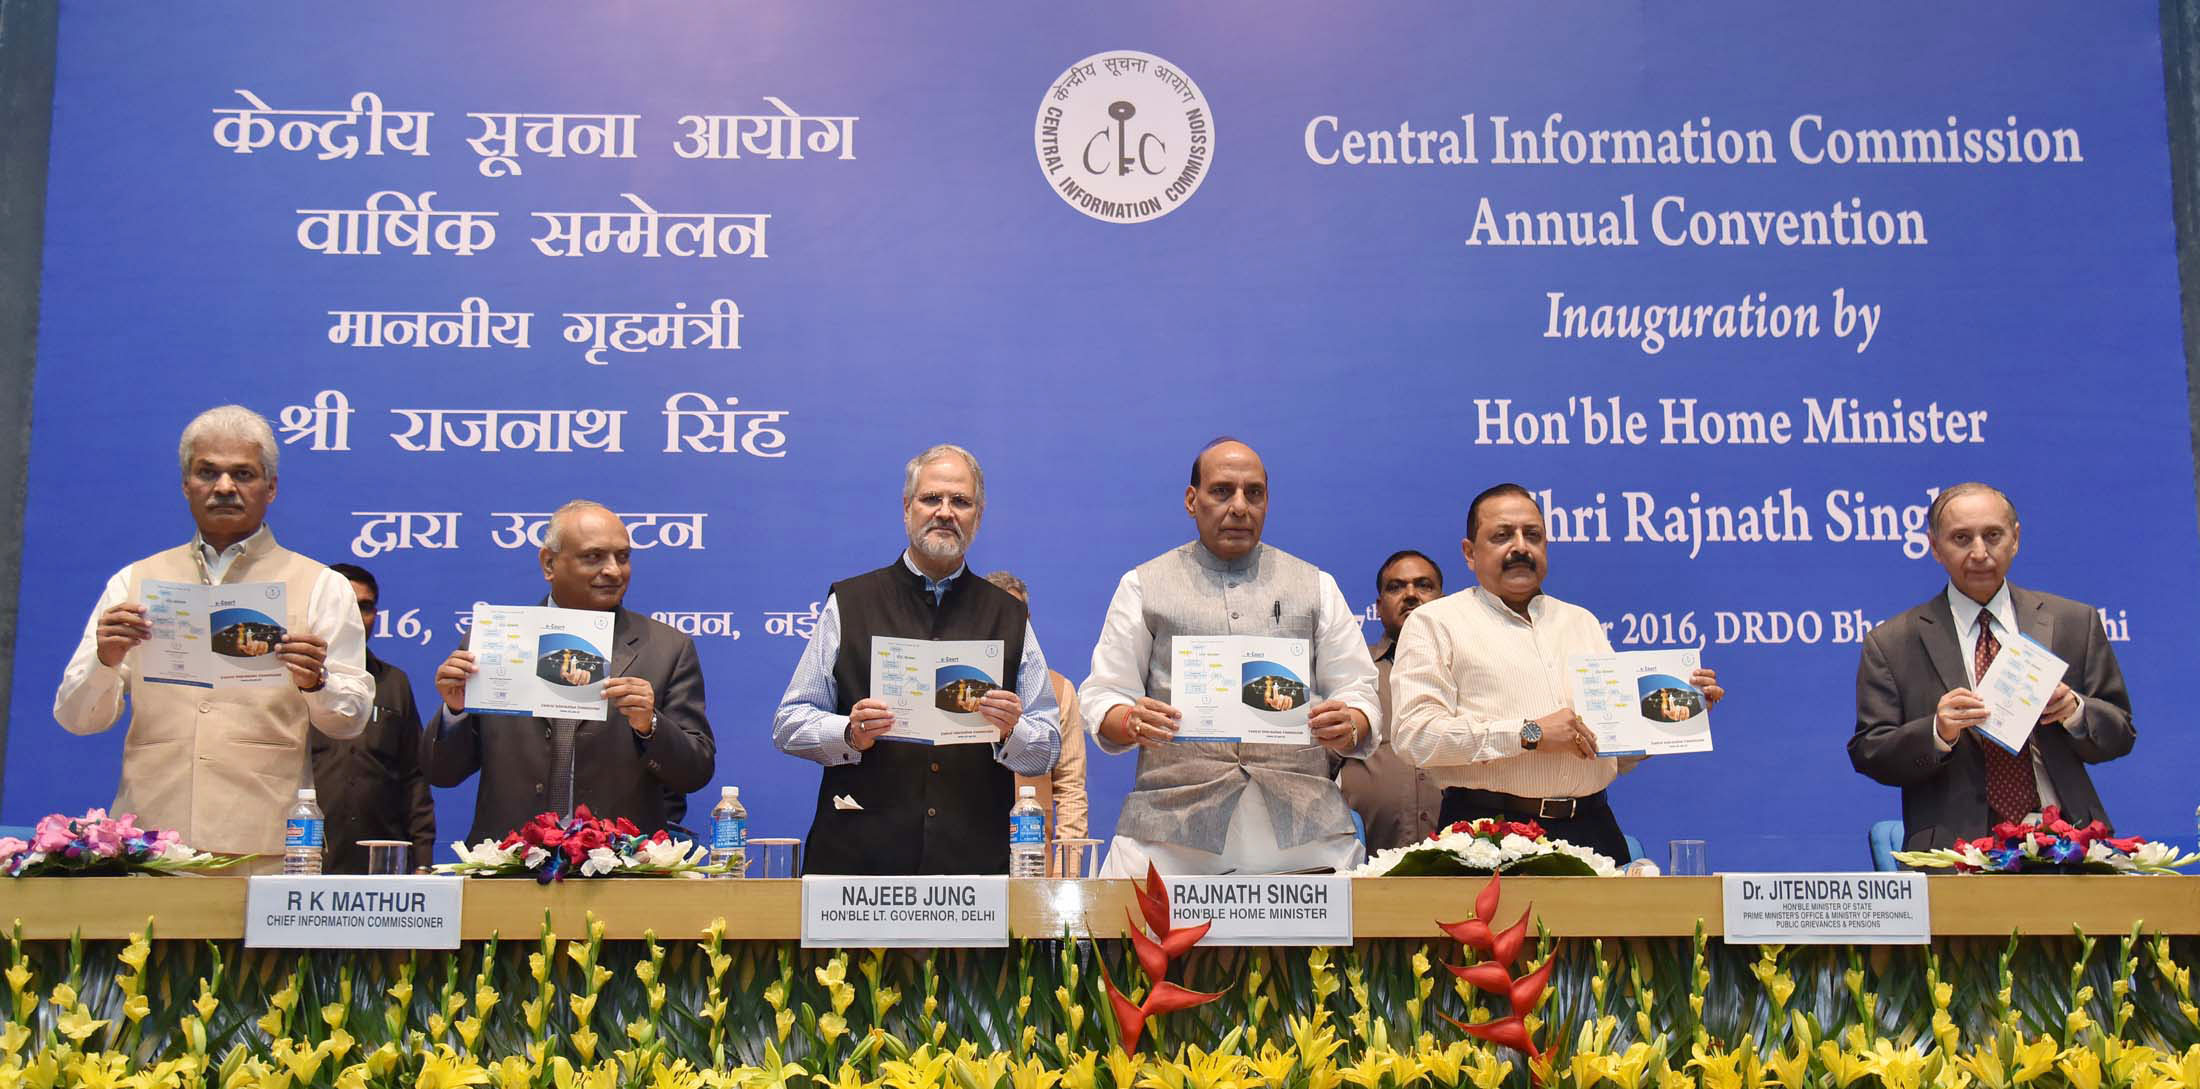 The Union Home Minister, Shri Rajnath Singh releasing the publication, at the inauguration of the 11th Annual Convention of Central Information Commission (CIC), in New Delhi on November 07, 2016. 	The Lt. Governor of Delhi, Shri Najeeb Jung, the Minister of State for Development of North Eastern Region (I/C), Prime Minister's Office, Personnel, Public Grievances & Pensions, Atomic Energy and Space, Dr. Jitendra Singh, the Chief Information Commissioner, Shri R.K. Mathur and other dignitaries are also seen.